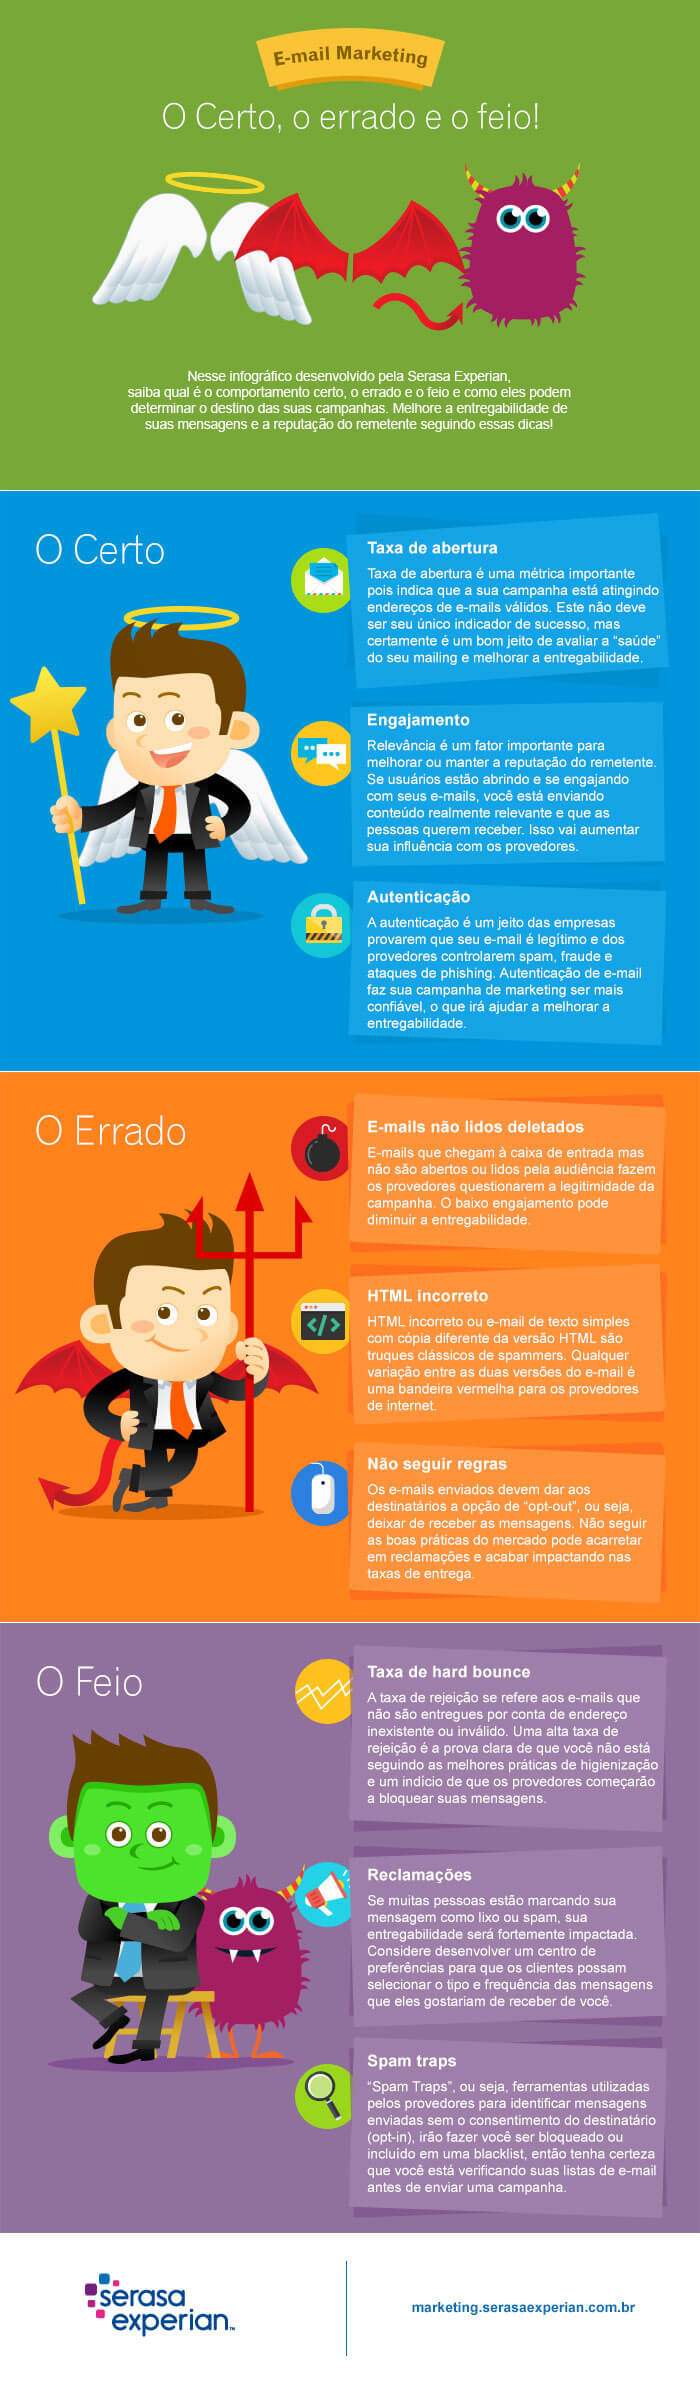 E-mail marketing: o certo, o errado e o feio